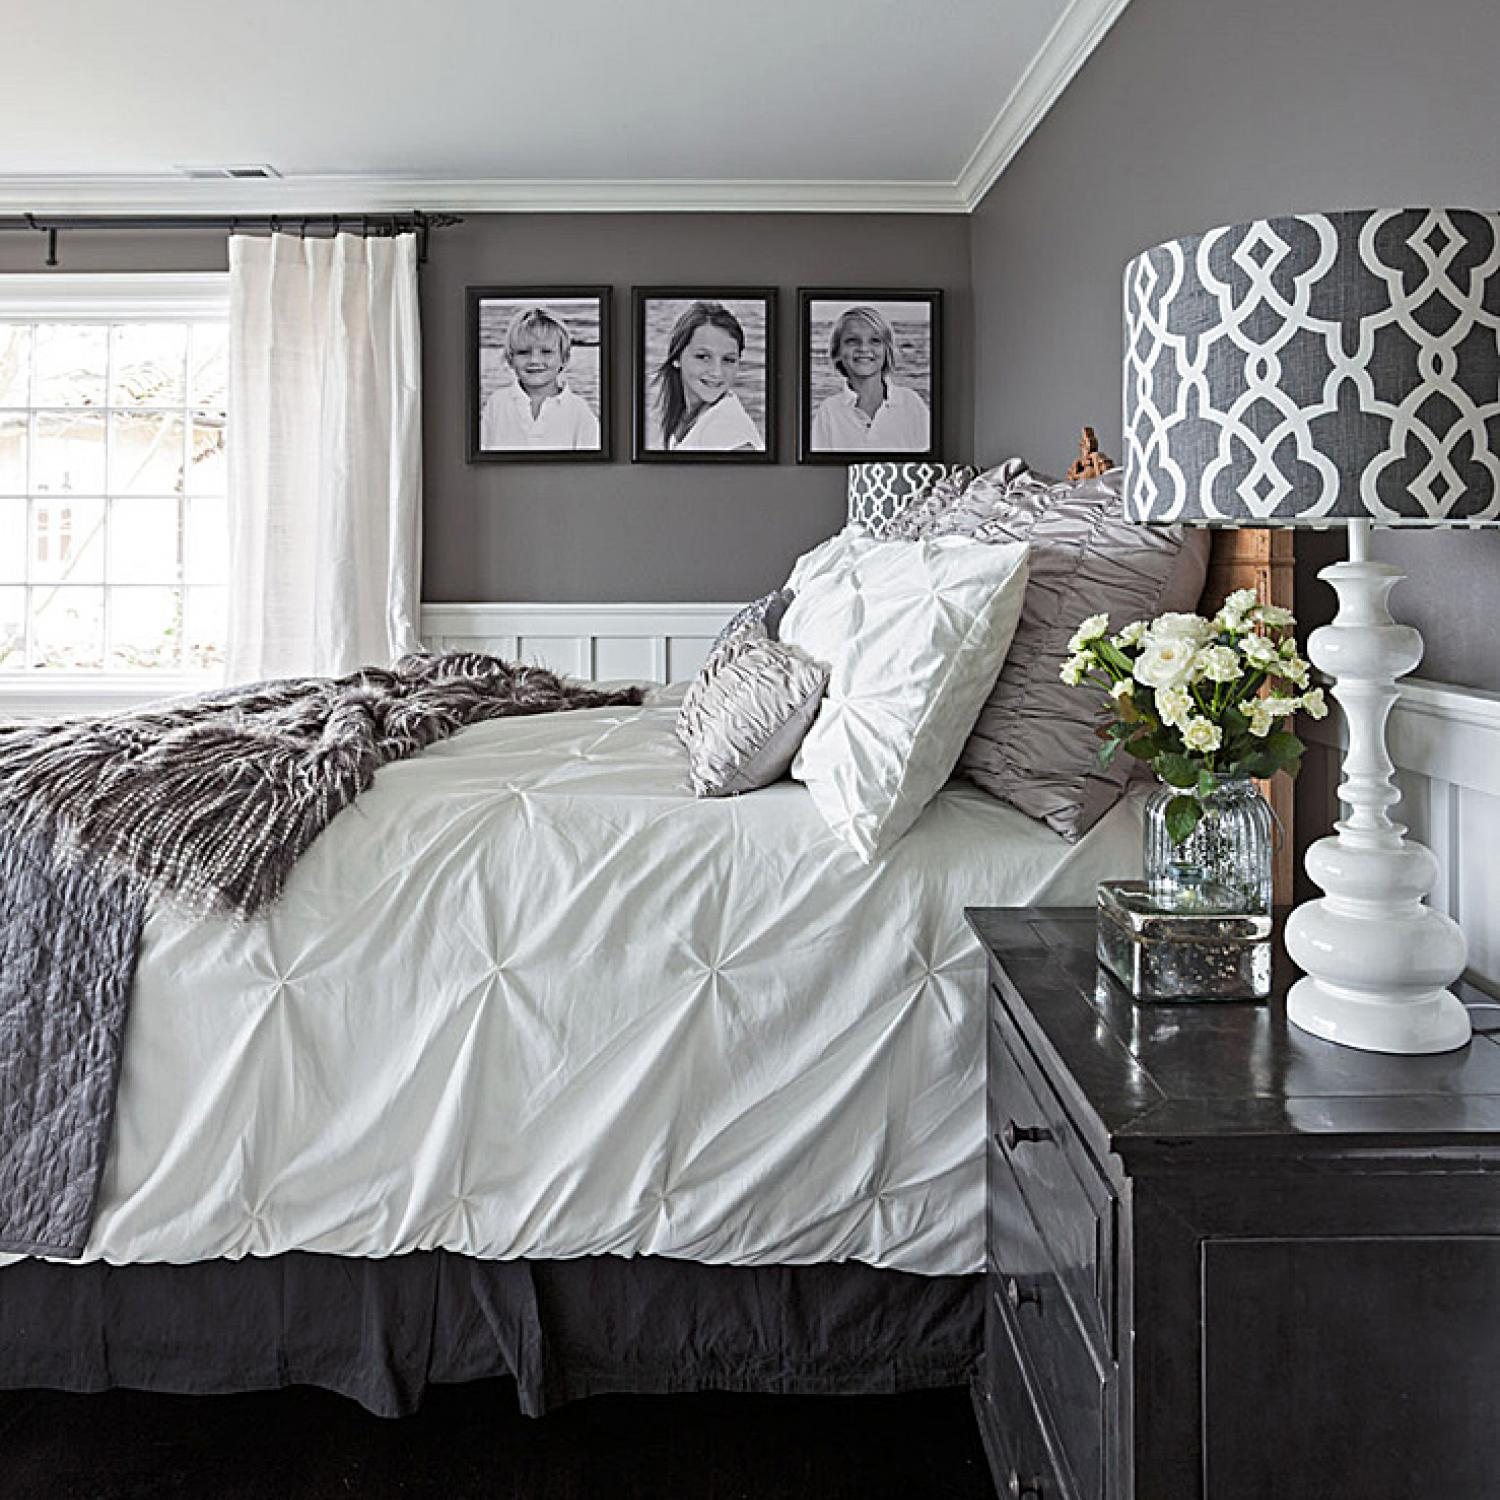 Decorating With Black White: Gorgeous Gray-and-White Bedrooms